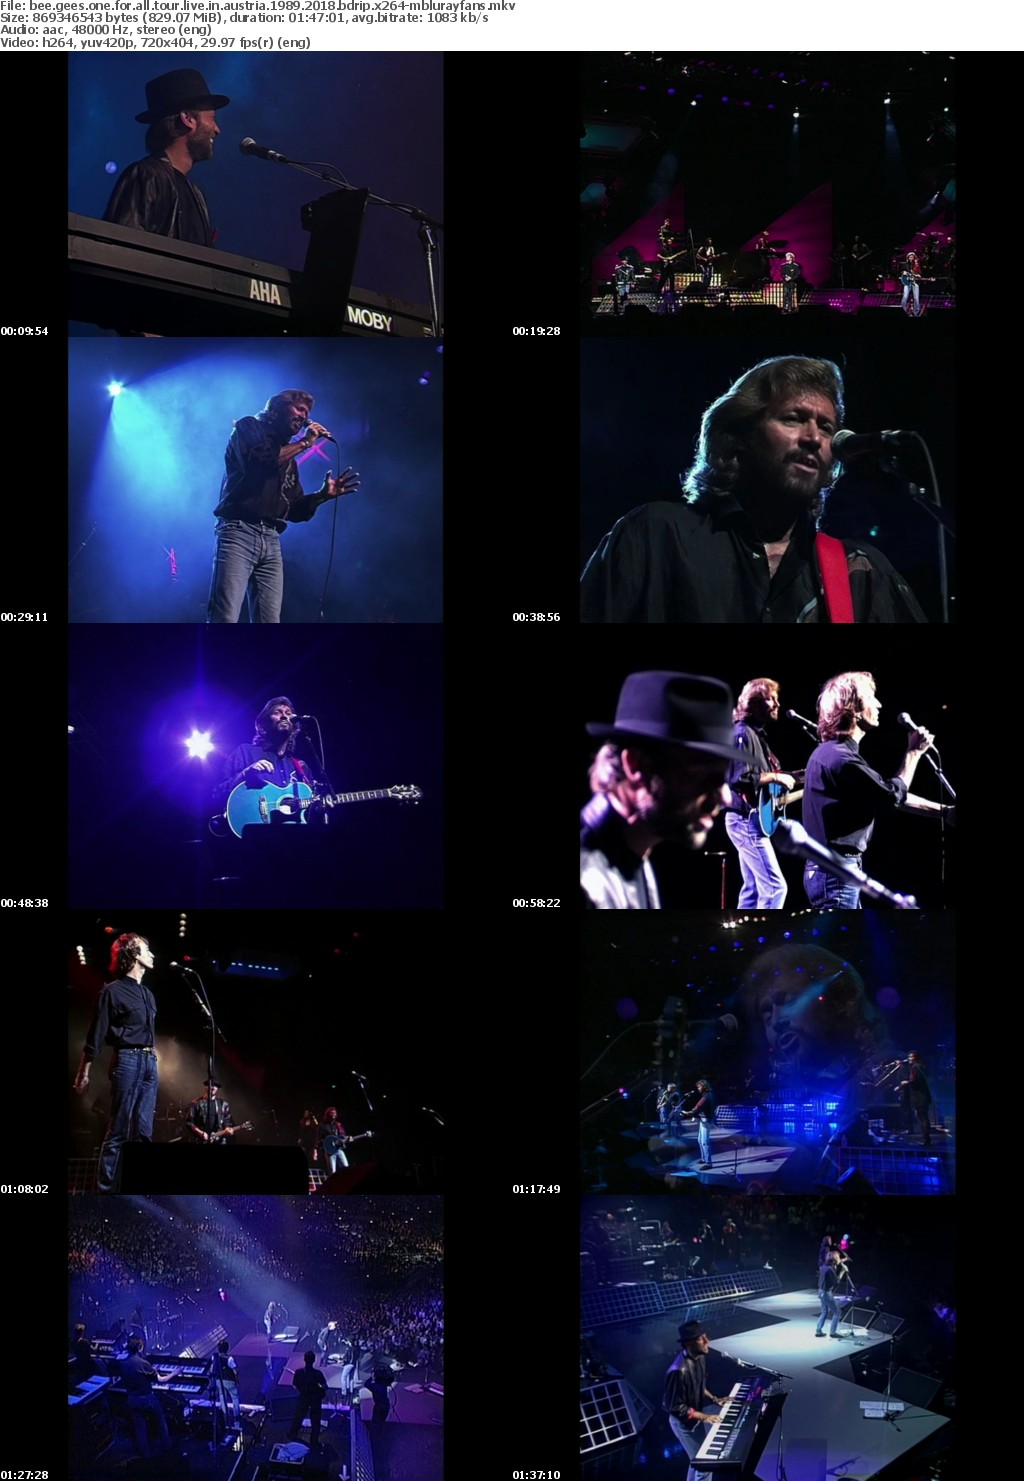 Bee Gees One For All Tour Live In Australia 1989 2018 BDRip x264-MBLURAYFANS